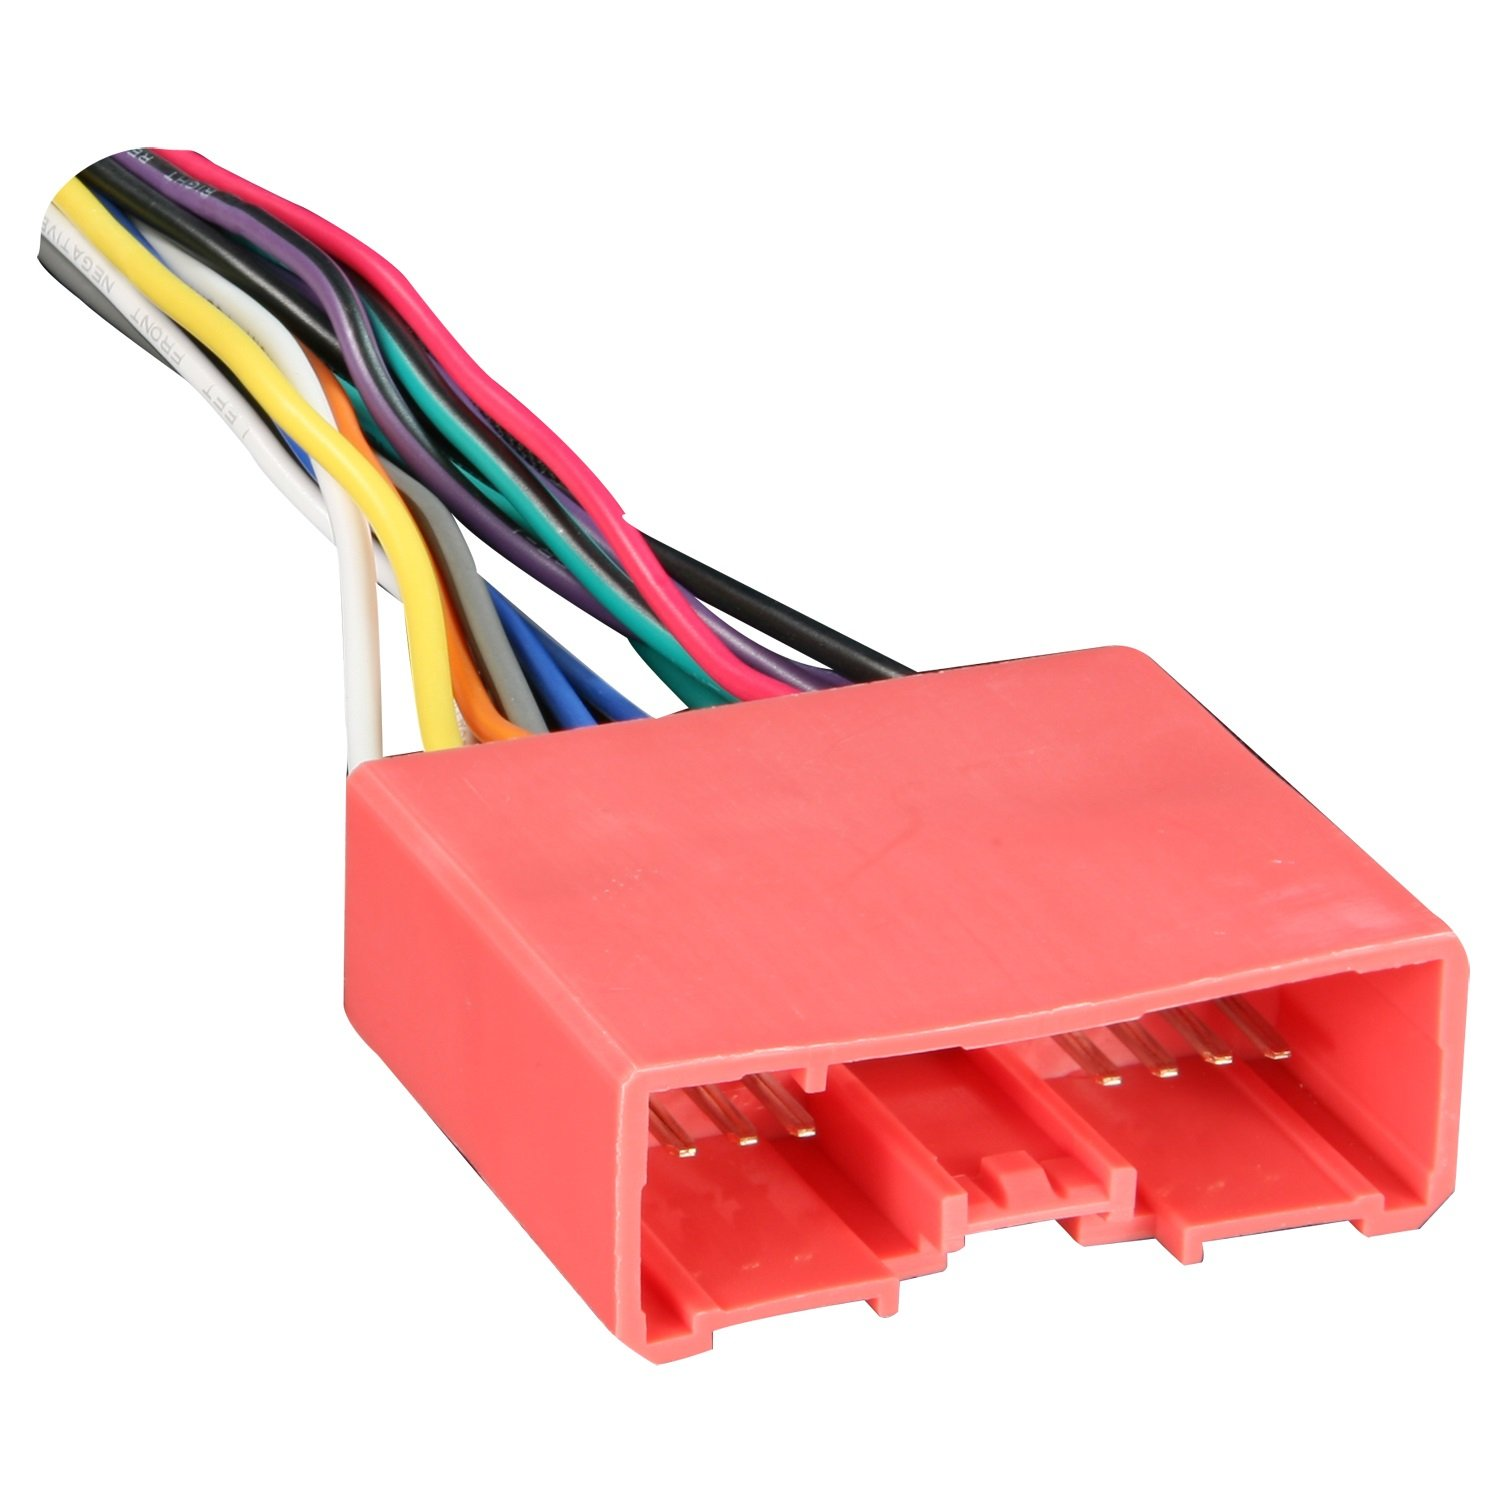 61xRWoZ7Z8L._SL1500_ amazon com metra electronics 70 7903 wiring harness for 2001 up metra radio wiring harness at creativeand.co